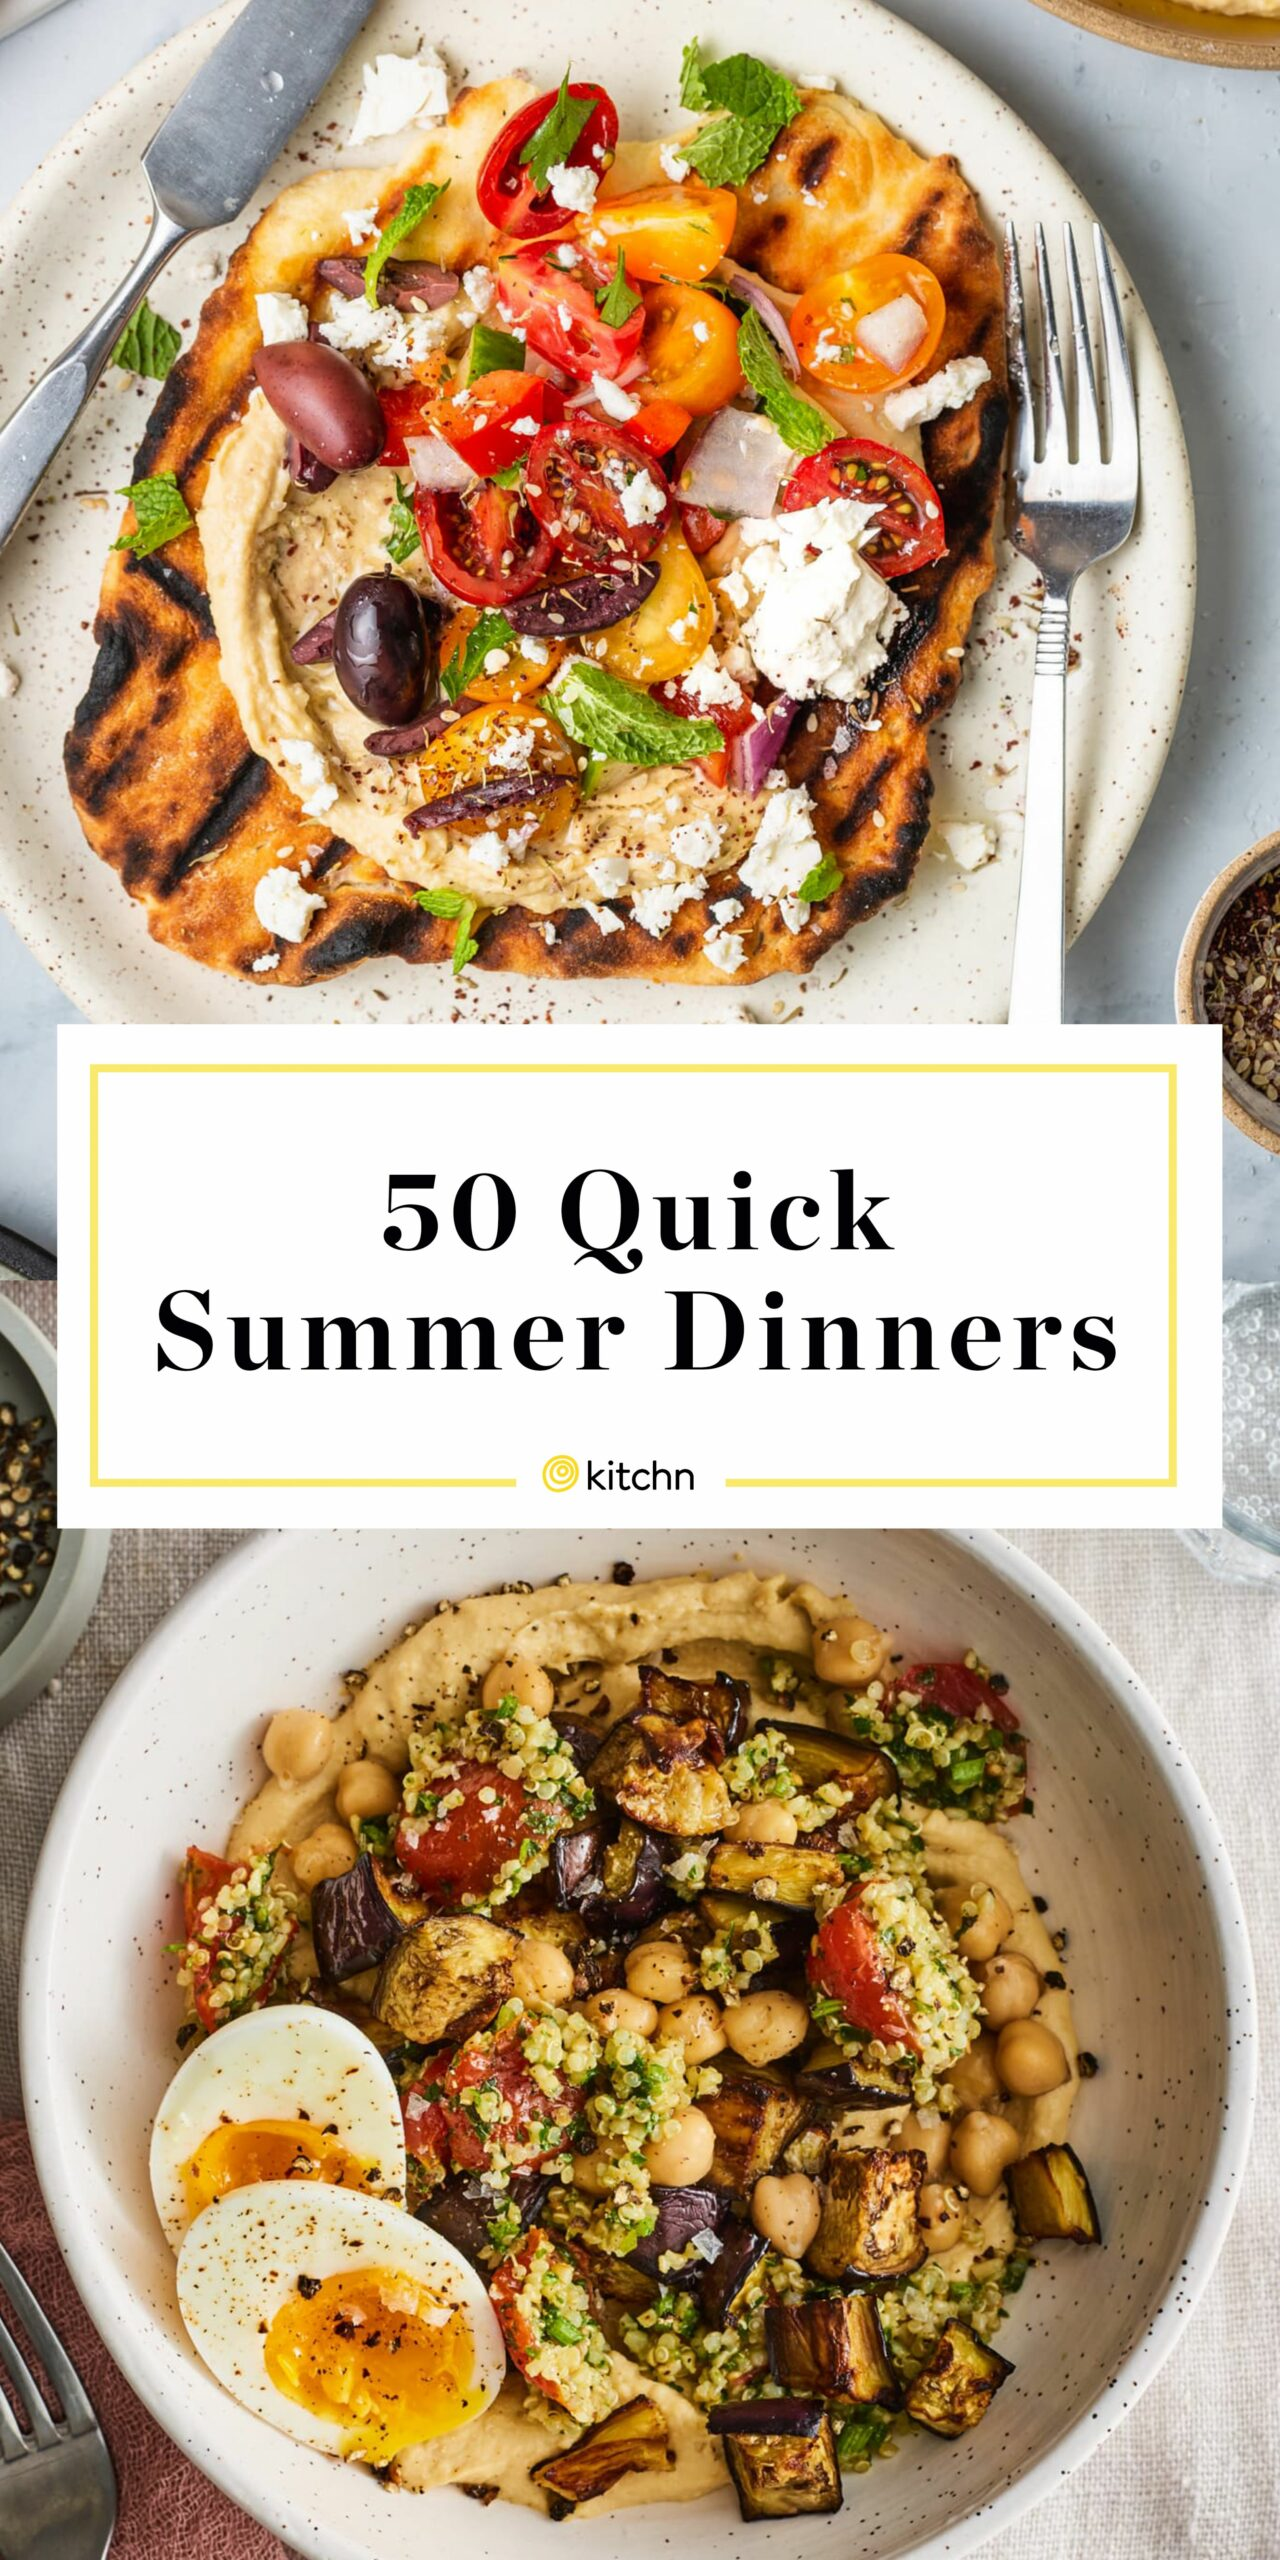 Quick & Easy Summer Suppers | Kitchn